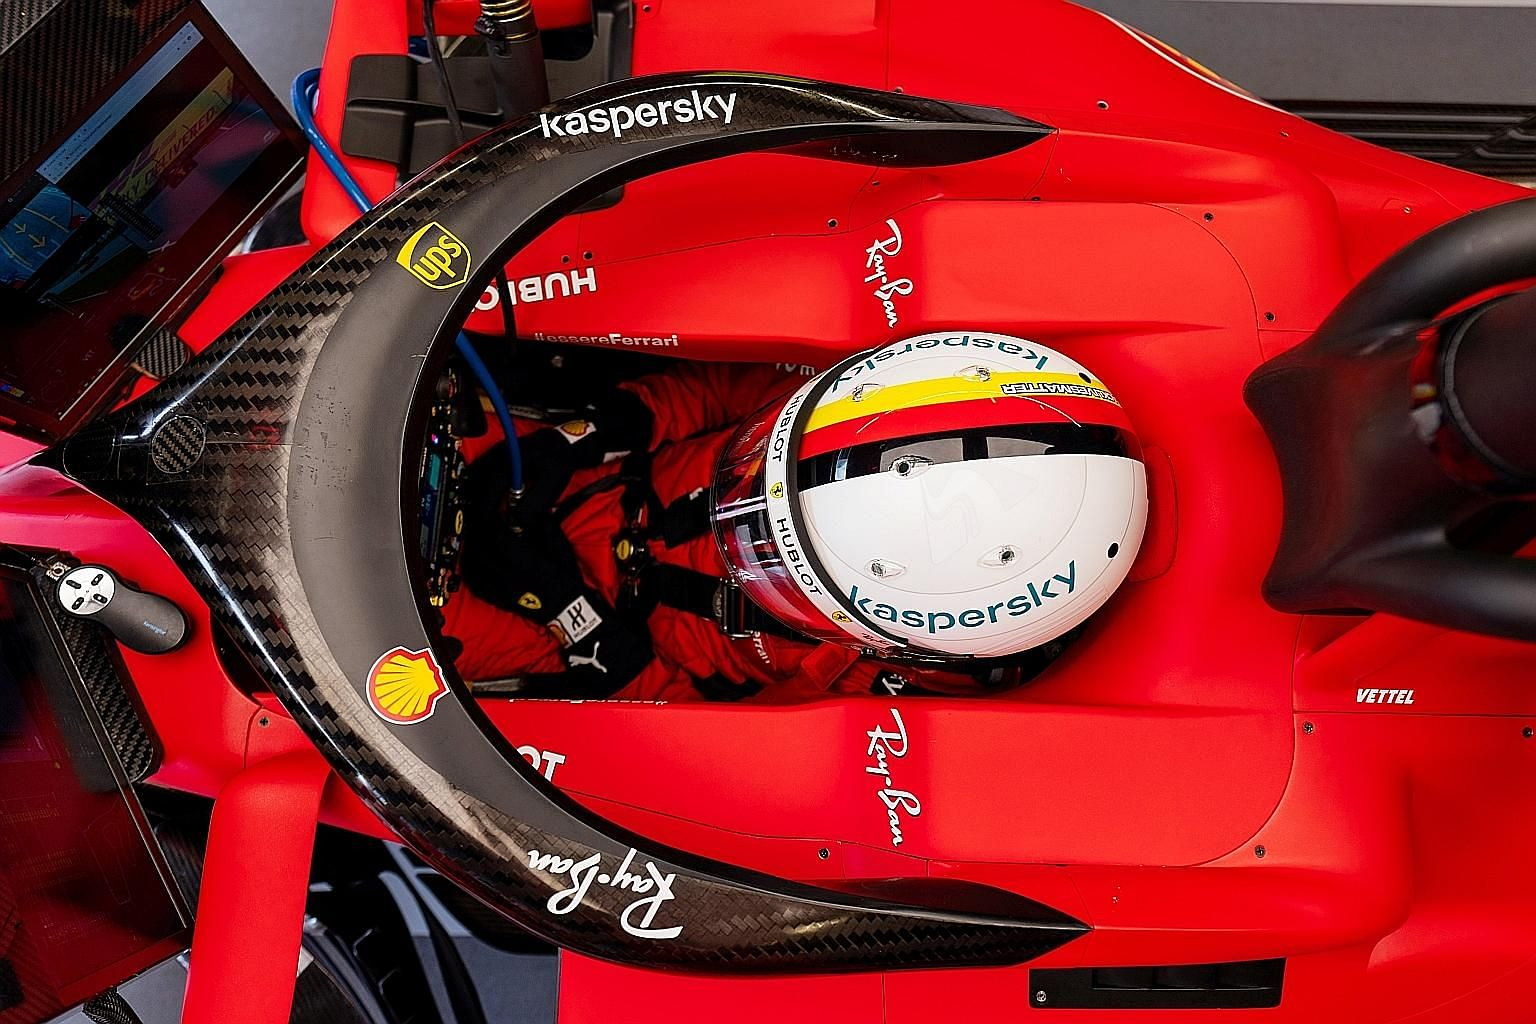 Sebastian Vettel waiting in the cockpit as his team prepare his Ferrari for the first practice of the Austrian Grand Prix at the Red Bull Ring yesterday. The F1 season, suspended just before the opening race in Melbourne in March, resumed behind closed do